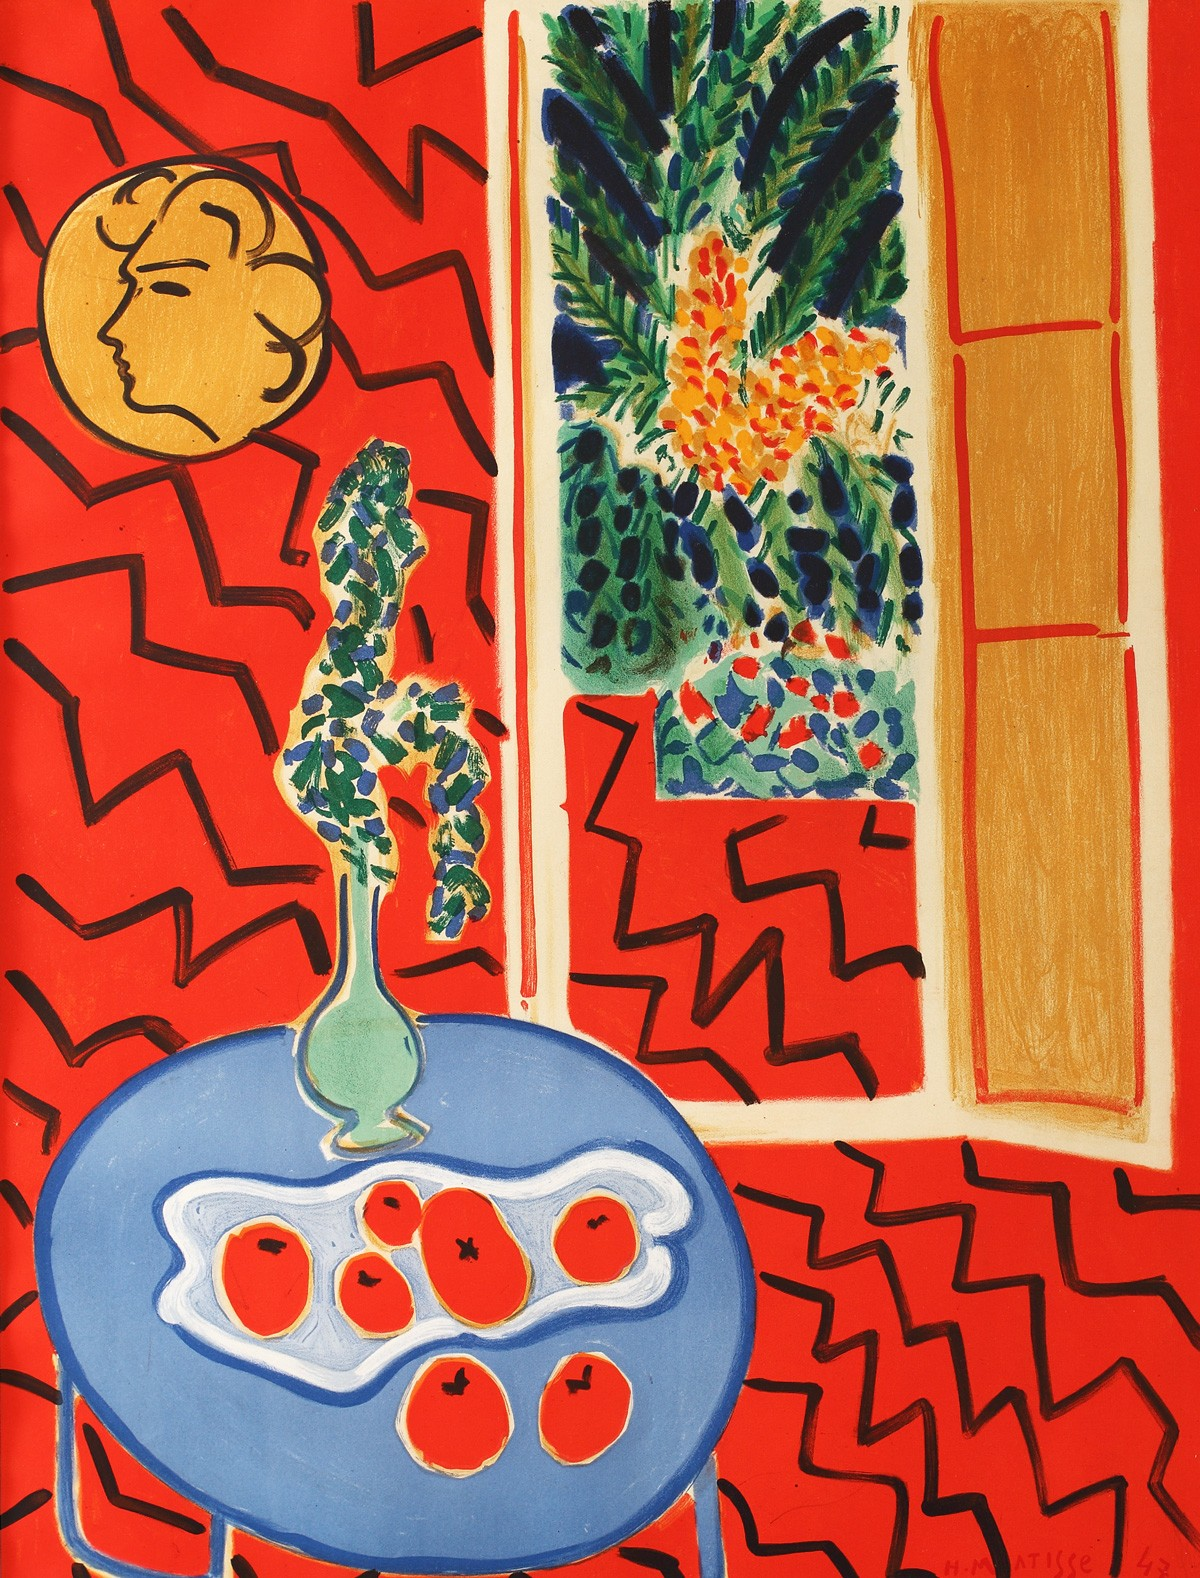 Lot 5 henri matisse int rieur rouge lavacow online for Interieur rouge matisse